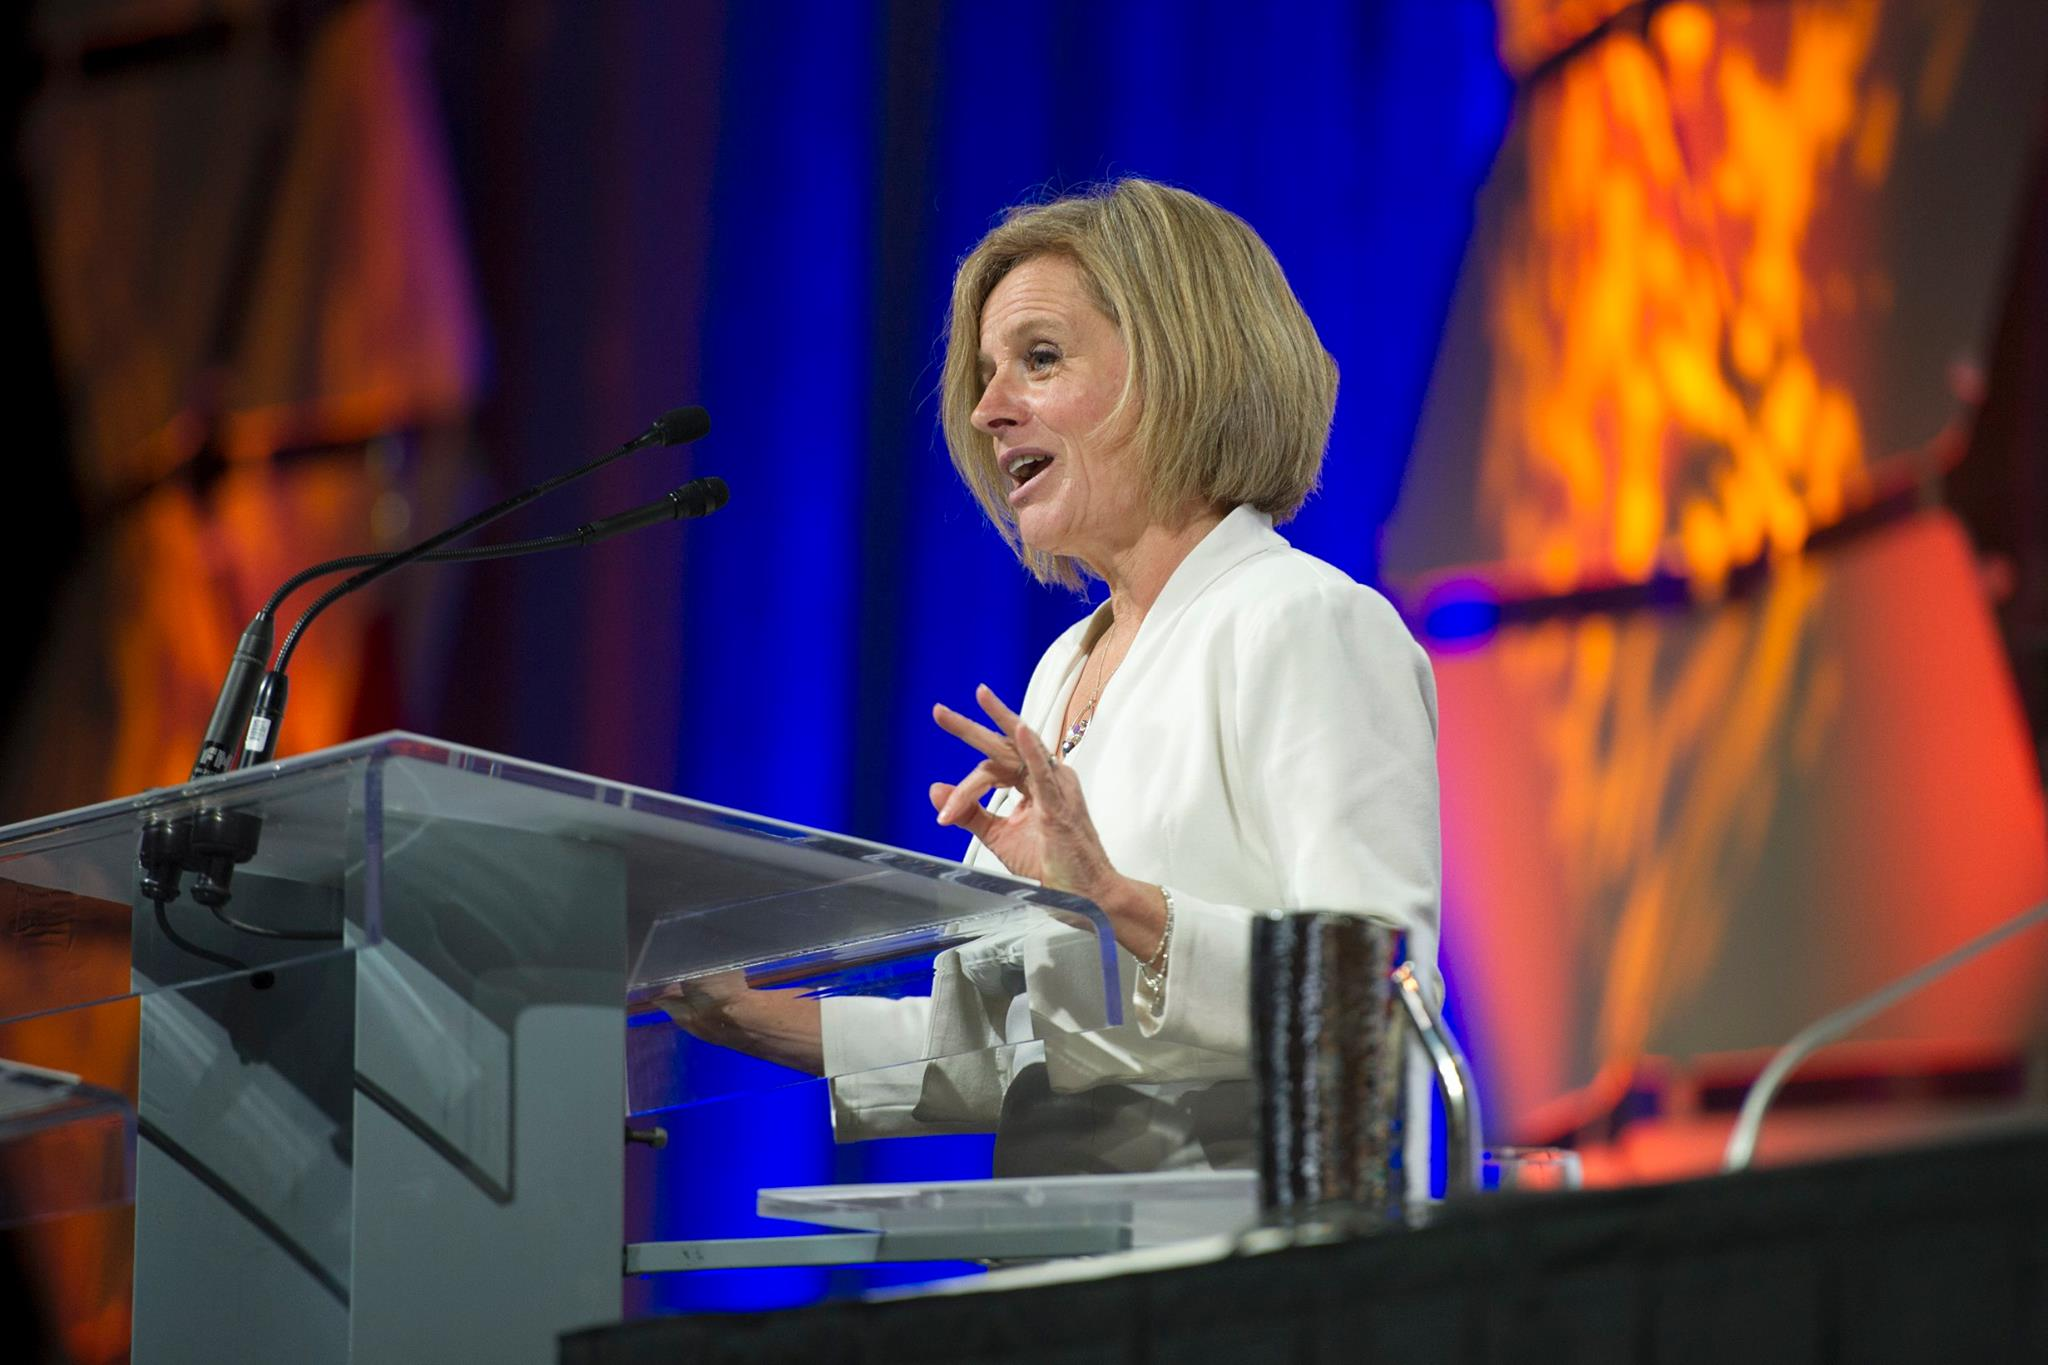 Alberta Premier Rachel Notley says she expects to meet face to face Wednesday with members of U.S. President Donald Trump's government as she continues a visit to Washington, D.C. (Photo: Rachel Notley/Facebook)